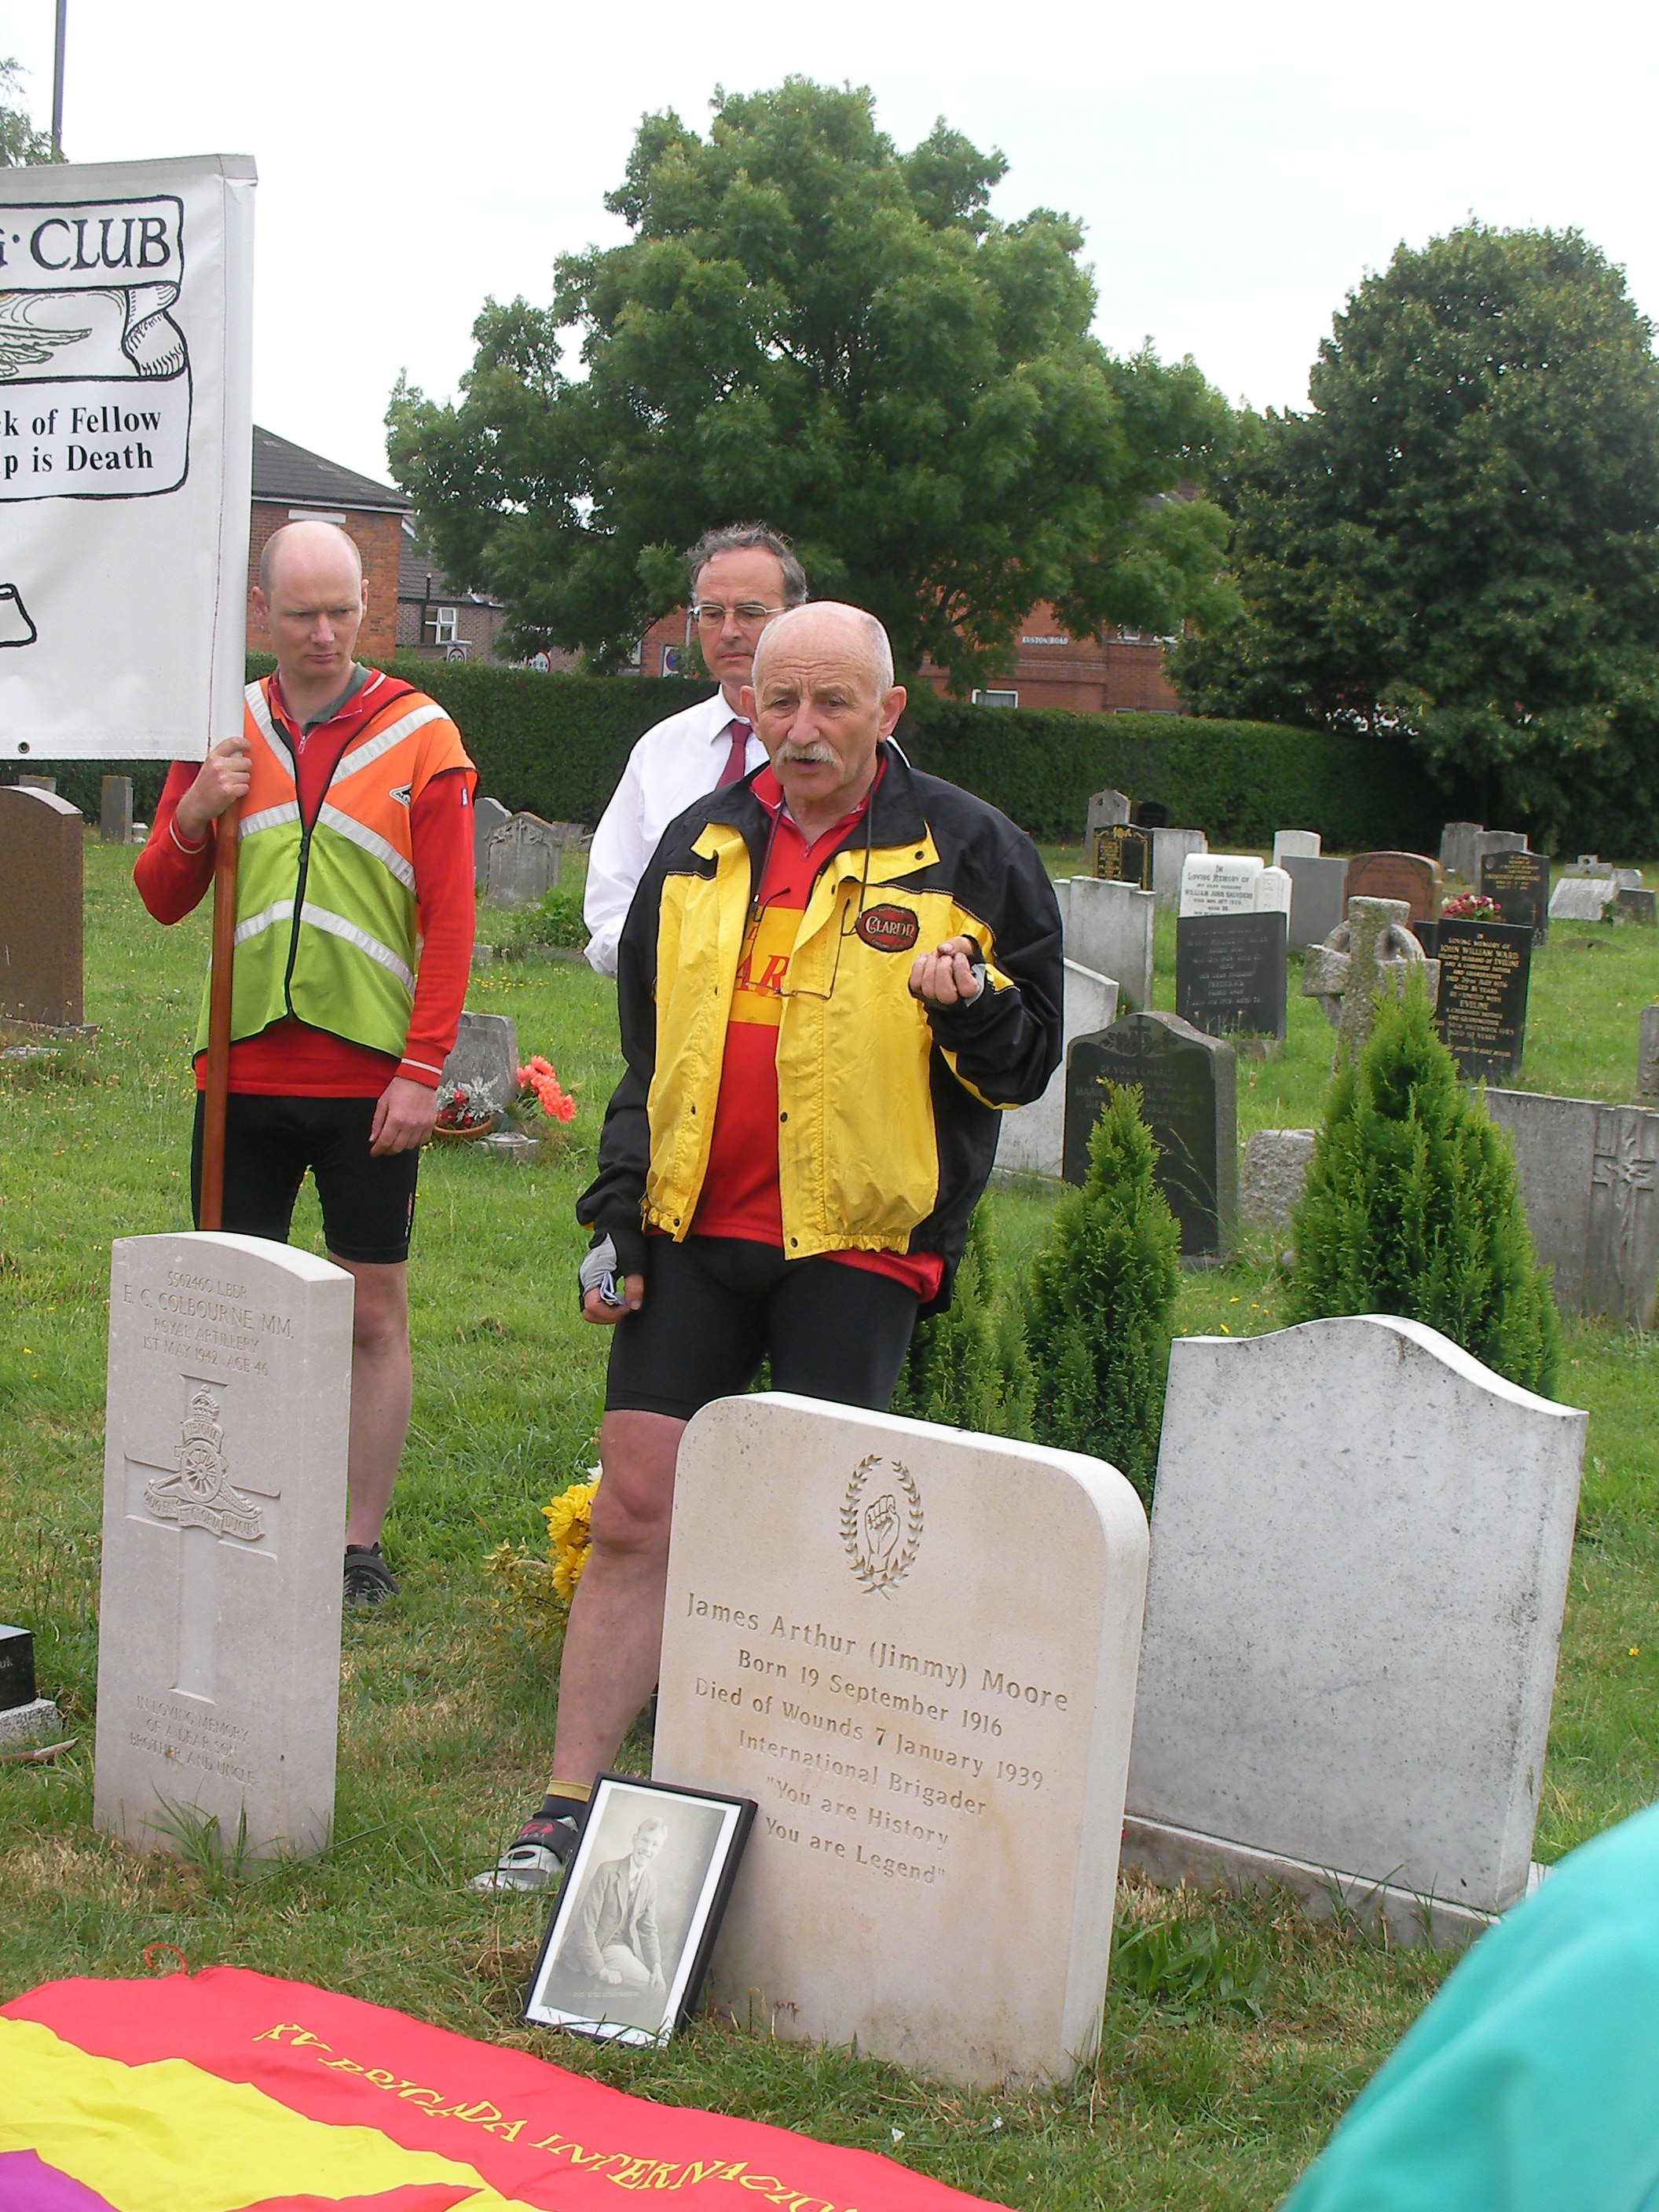 Charles Jepson speaking at Jimmy Miller´s grave